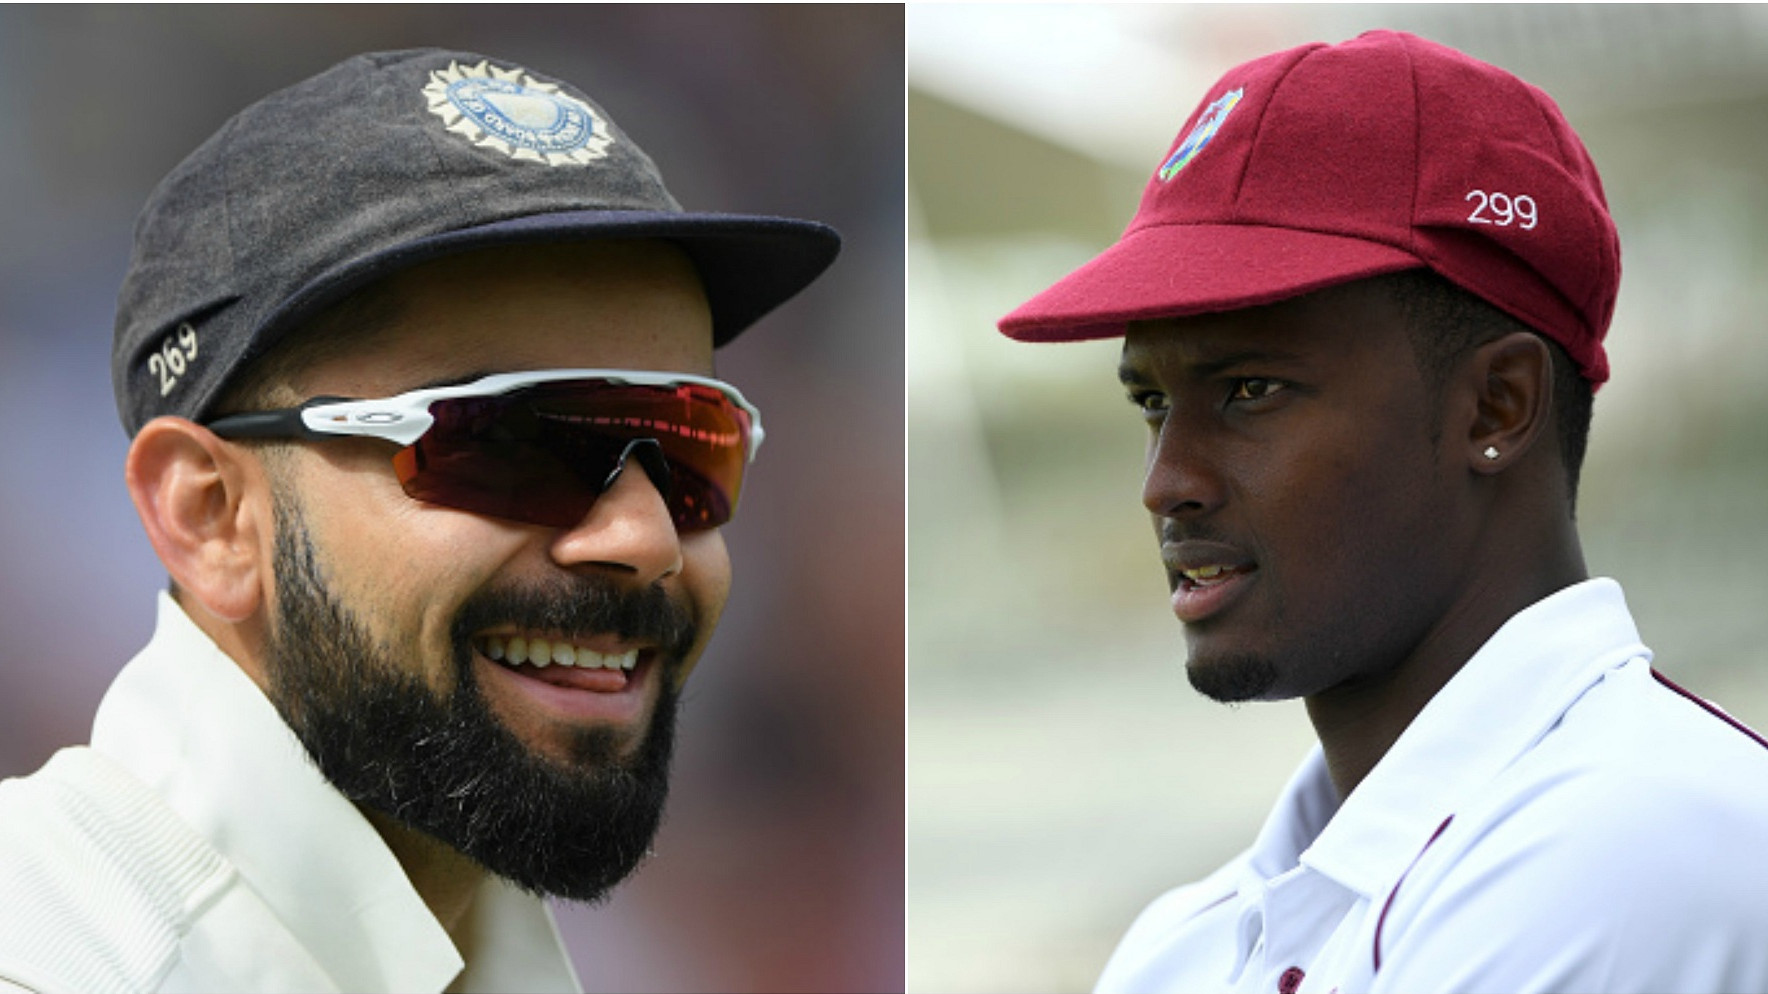 IND v WI 2018: 1st Test – India begins home season looking to dominate a resilient West Indies